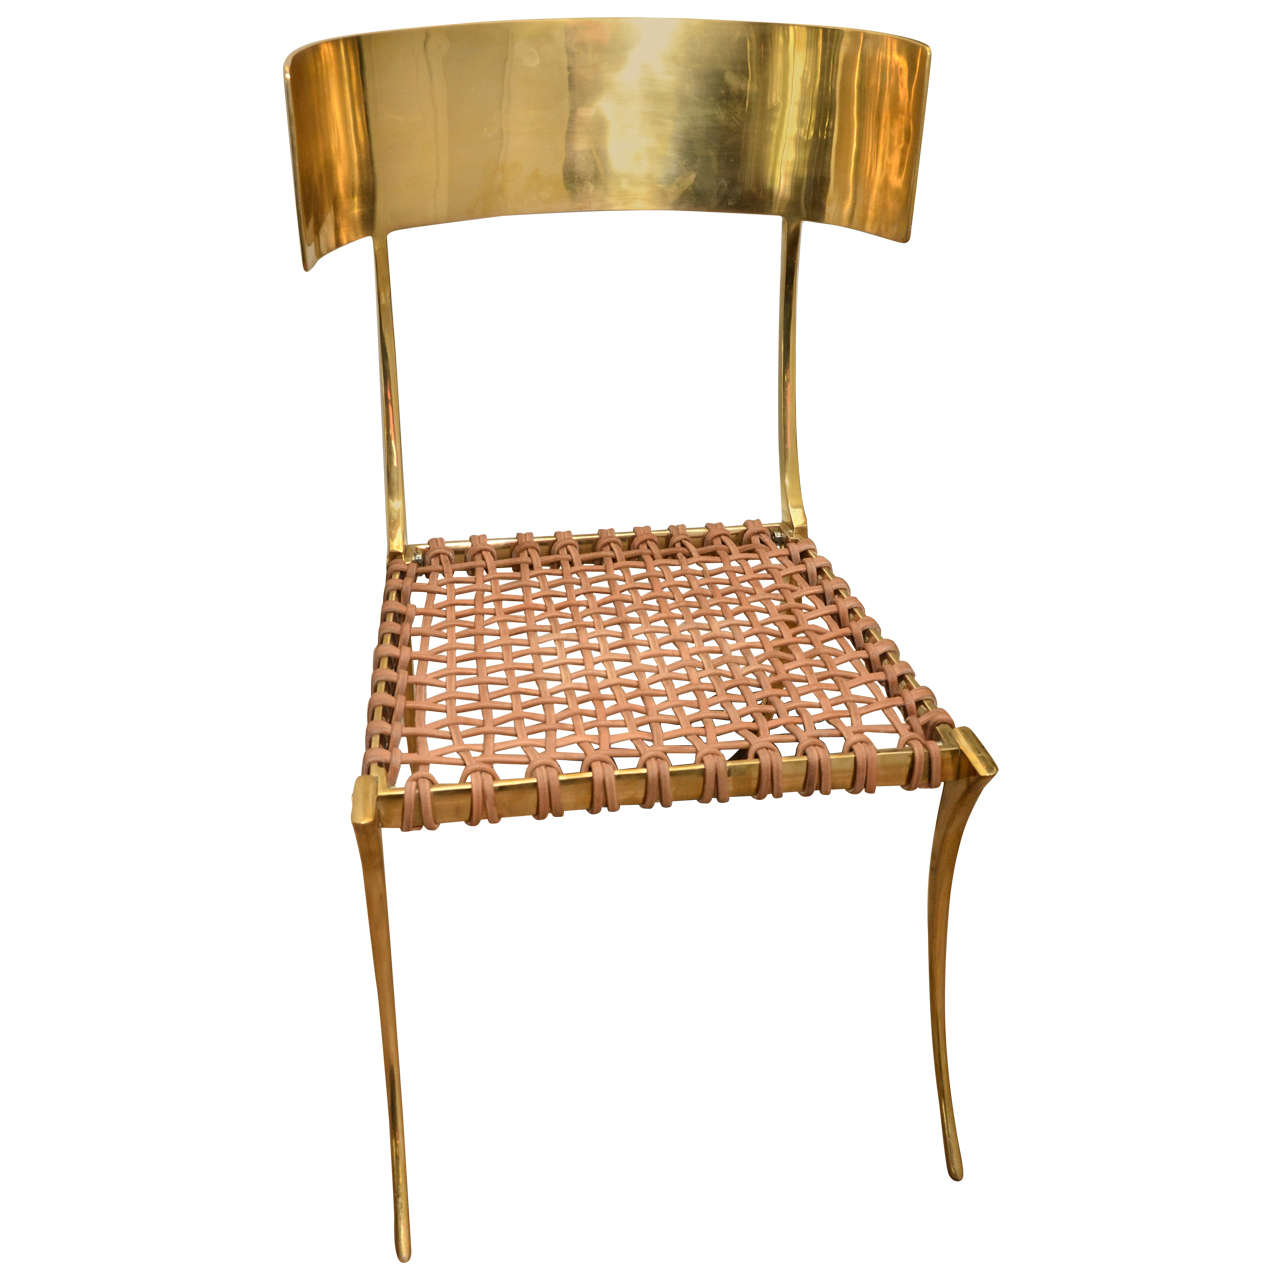 Gentil Contemporary Klismos Brass Chair With Leather Straps For Sale